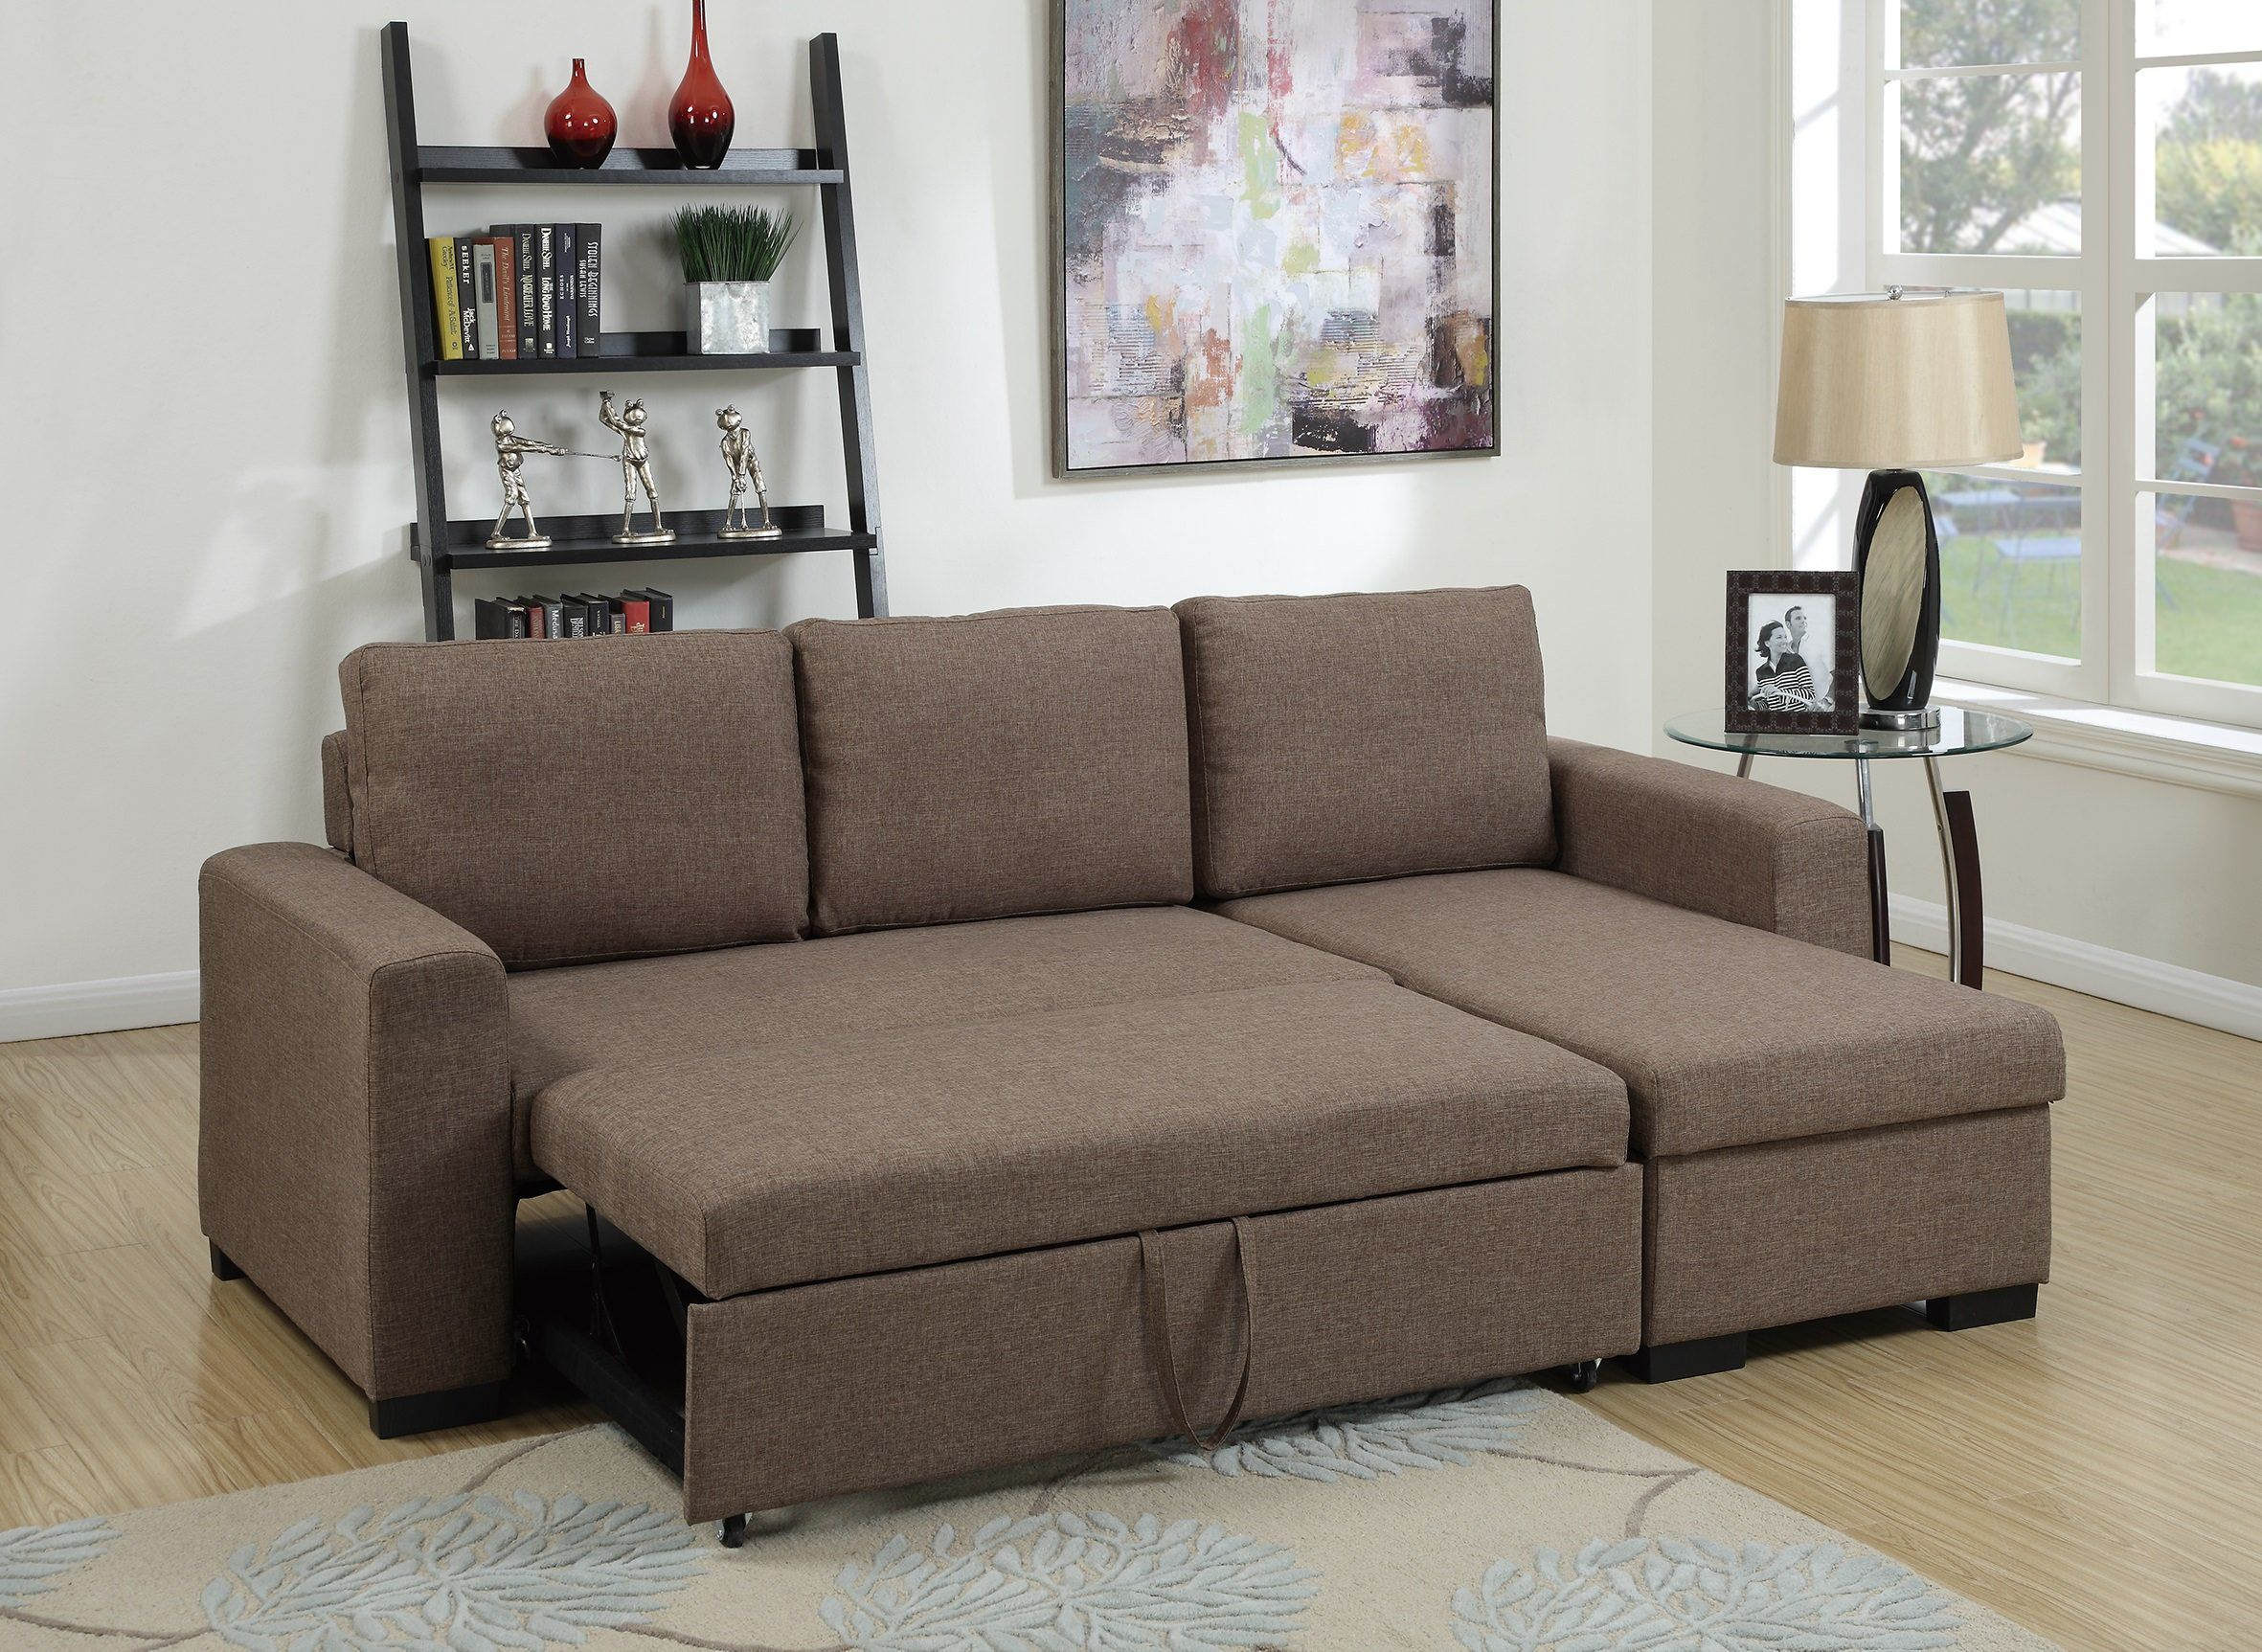 Convertible Sectional Sofa Fabric Sectional Sofas Sectional Sofa Leather Sectional Sofas